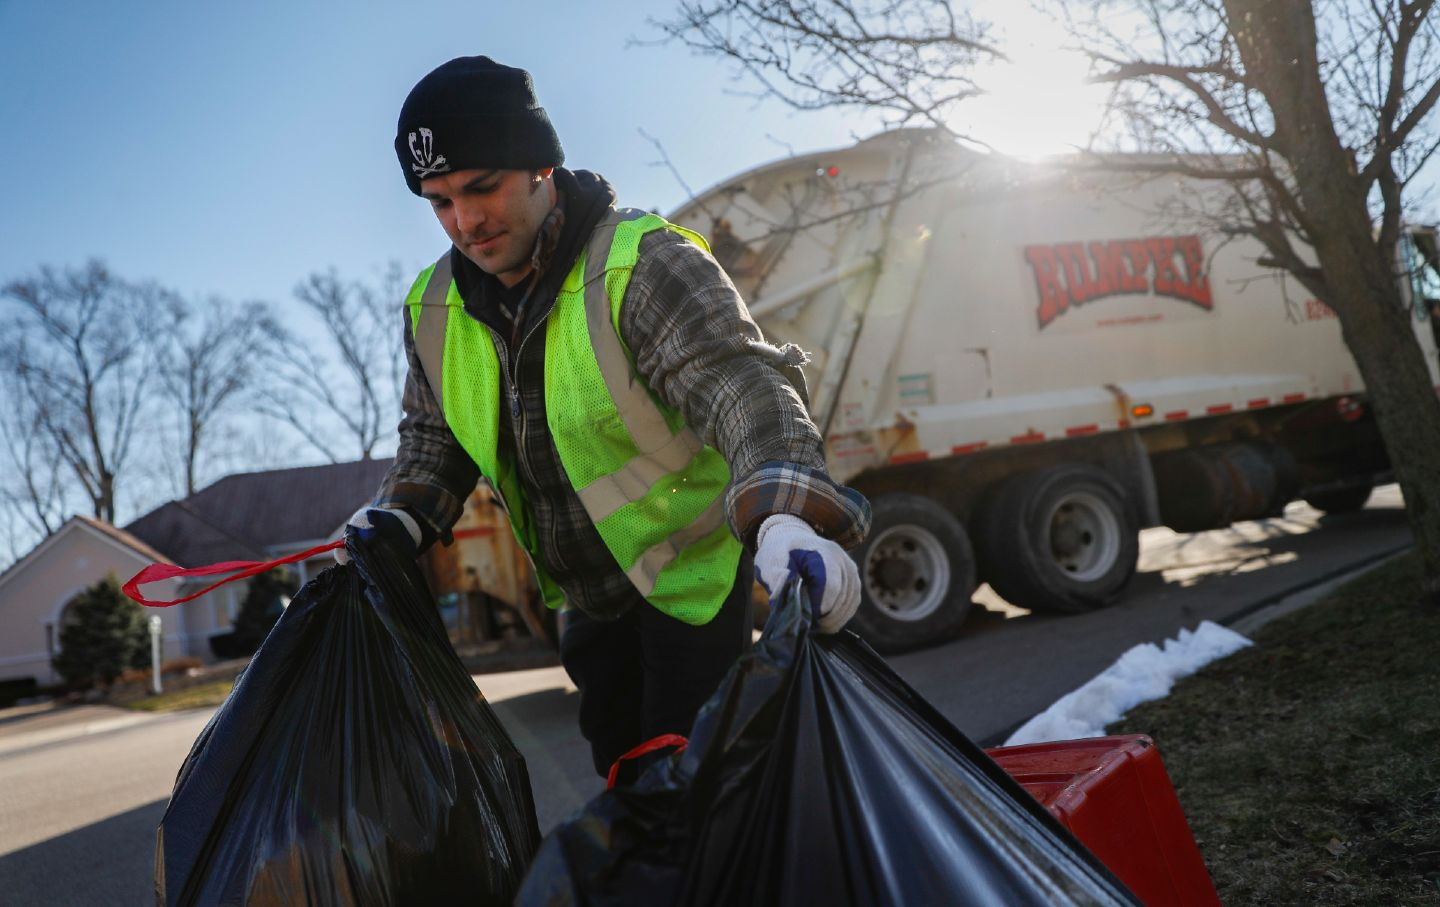 A sanitation worker hauls recycling bags in Beavercreek, Ohio.